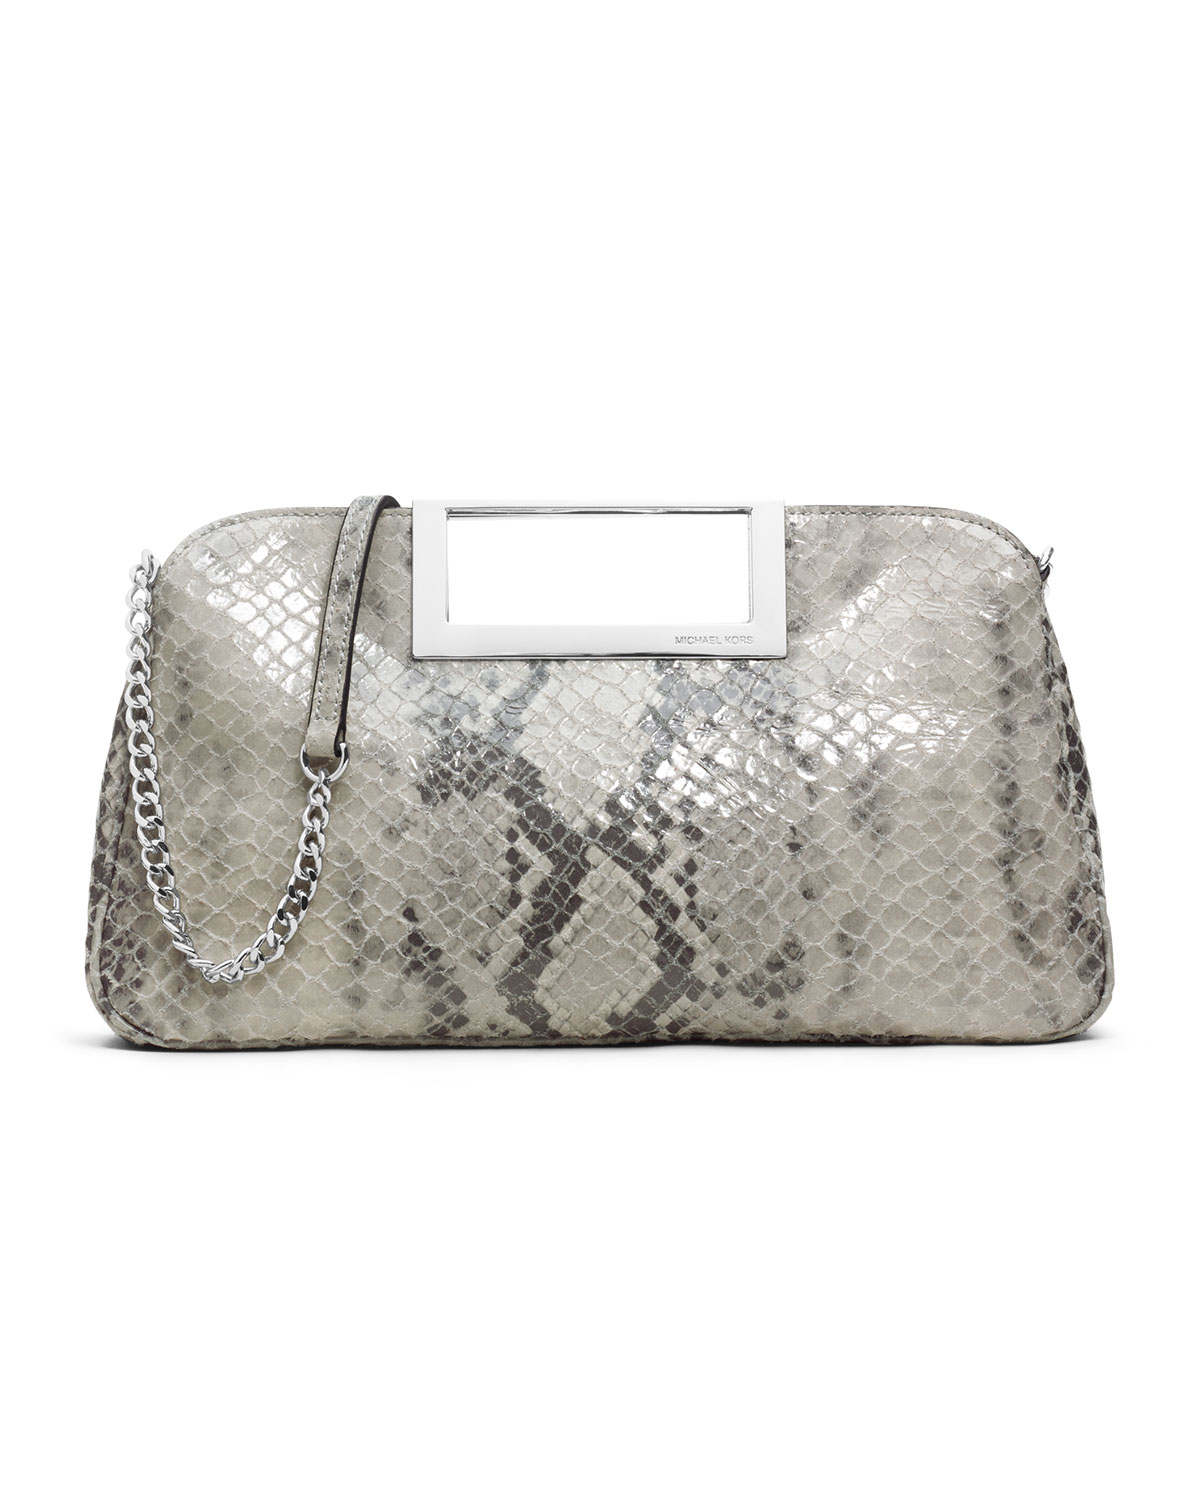 michael kors michael large berkley clutch in gray pearl. Black Bedroom Furniture Sets. Home Design Ideas